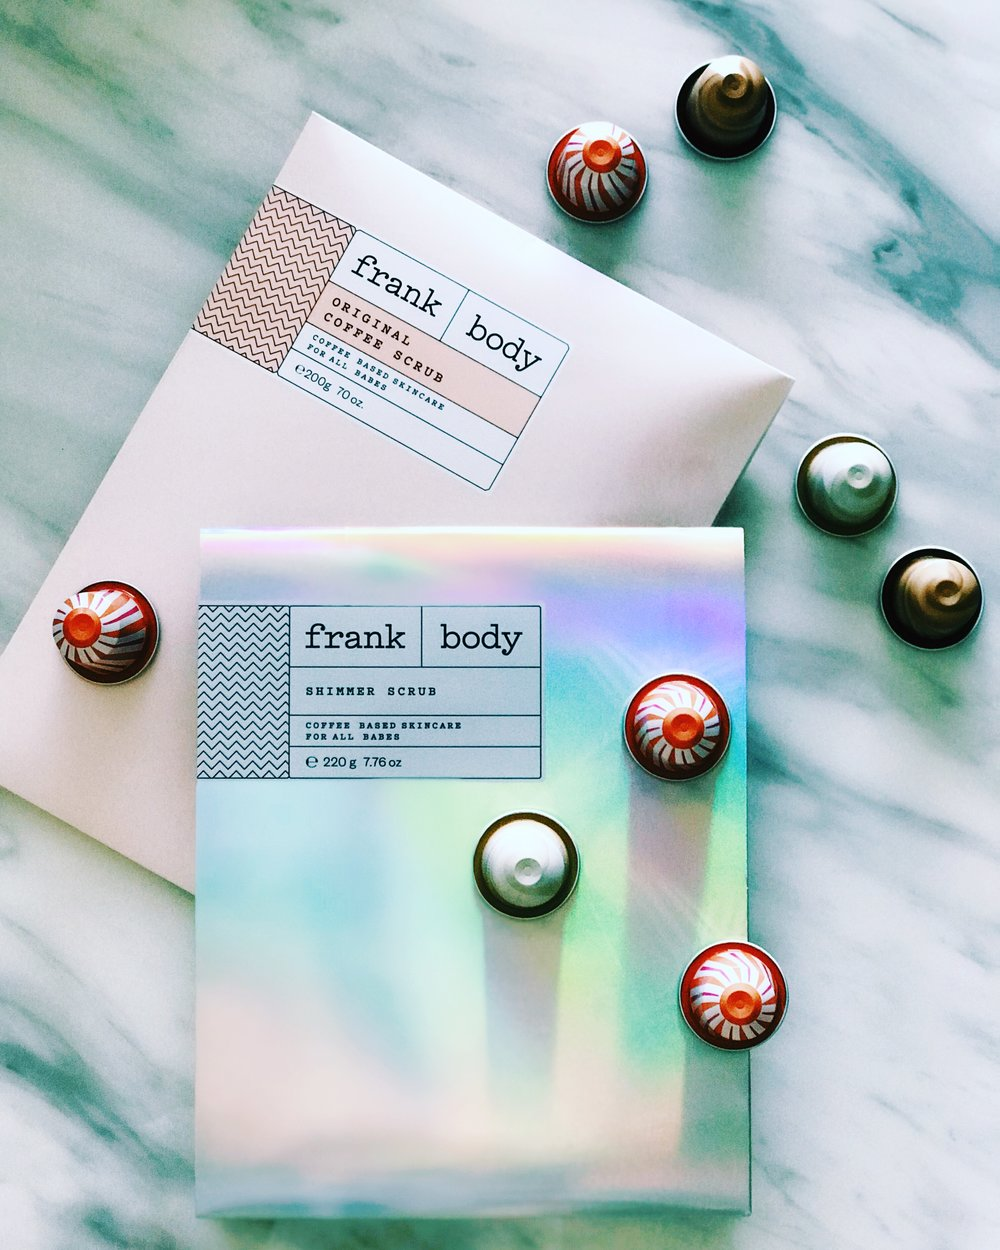 Frank Body | Original Coffee Scrub 200G $16.95 AU   Frank Body | Shimmer Scrub 200G $19.95 AU - Limited Edition